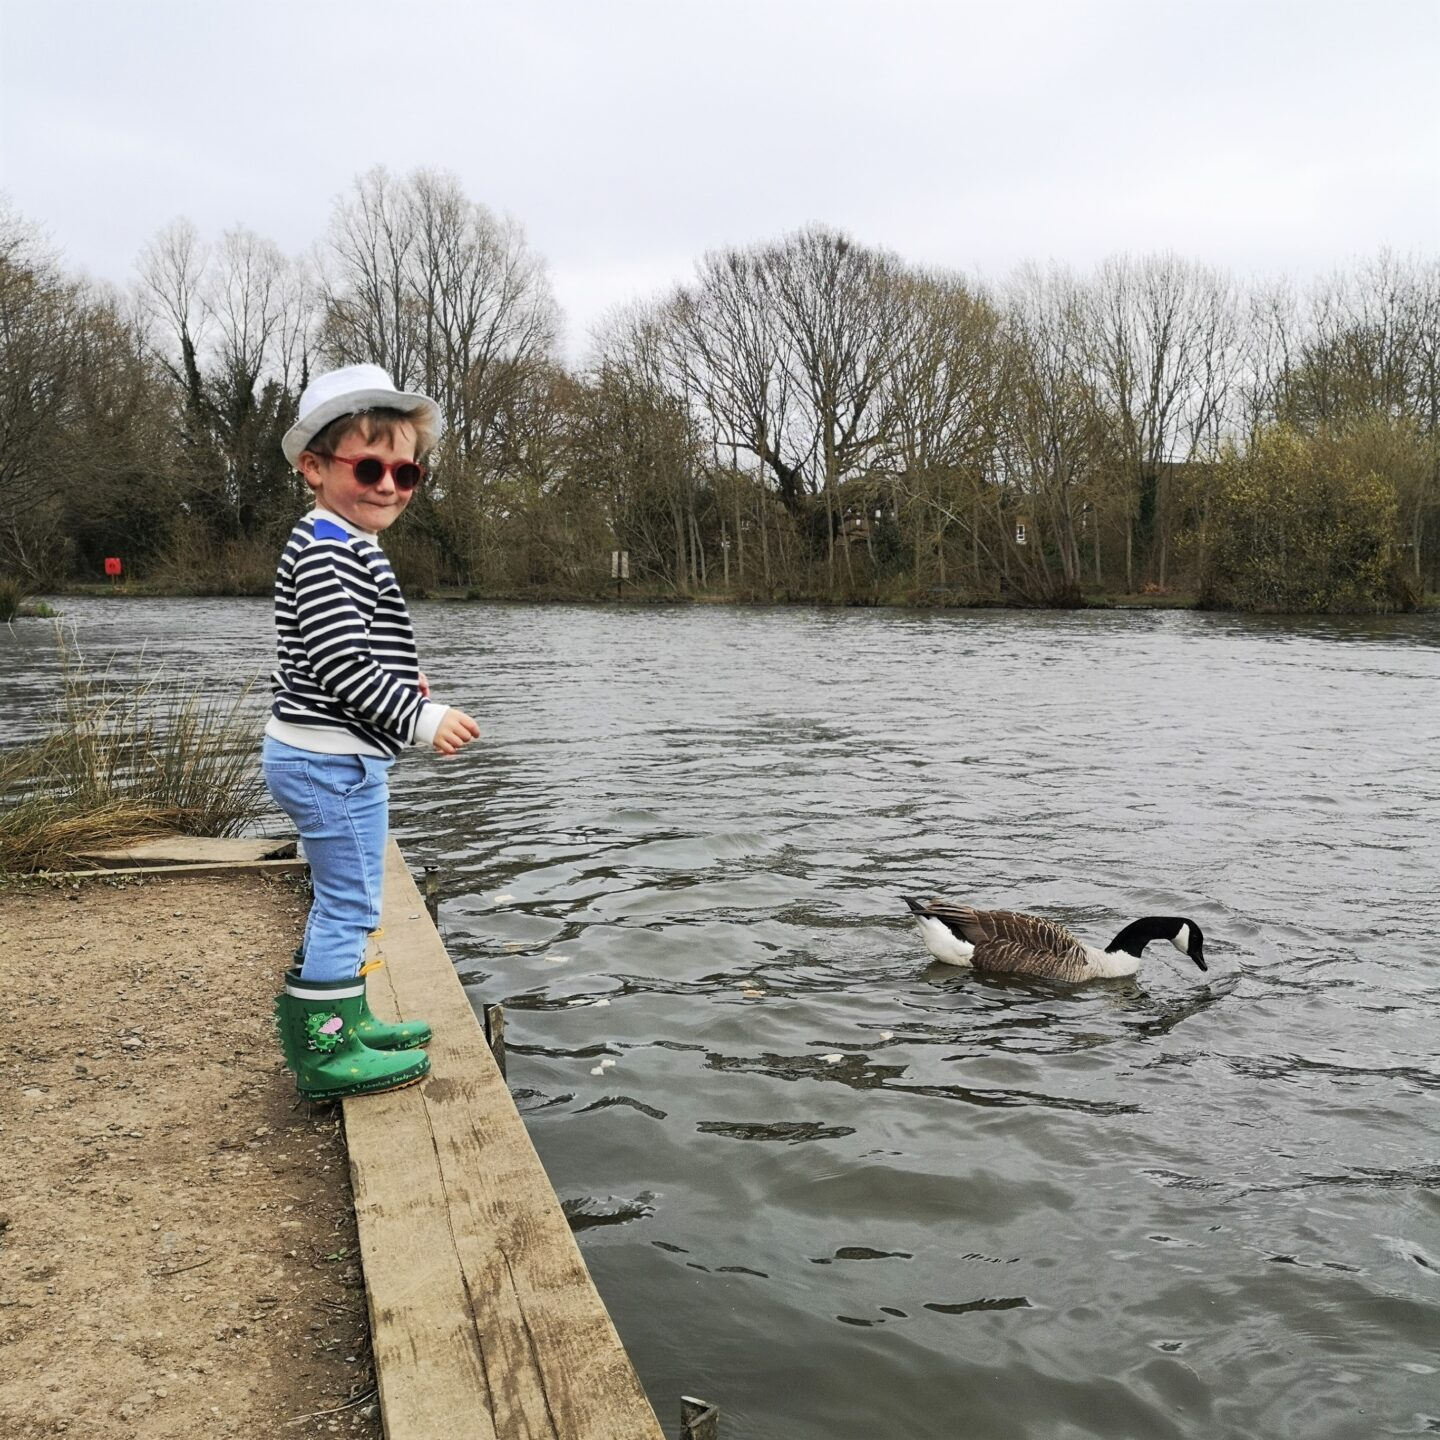 Singleton Lake, Ashford Green Corridor, Ashford Places, Villages in Kent, Free Family Days Out, Days Out in Kent, Visit Kent, Things to do in Kent, Kentish Life, Family Time, The Frenchie Mummy